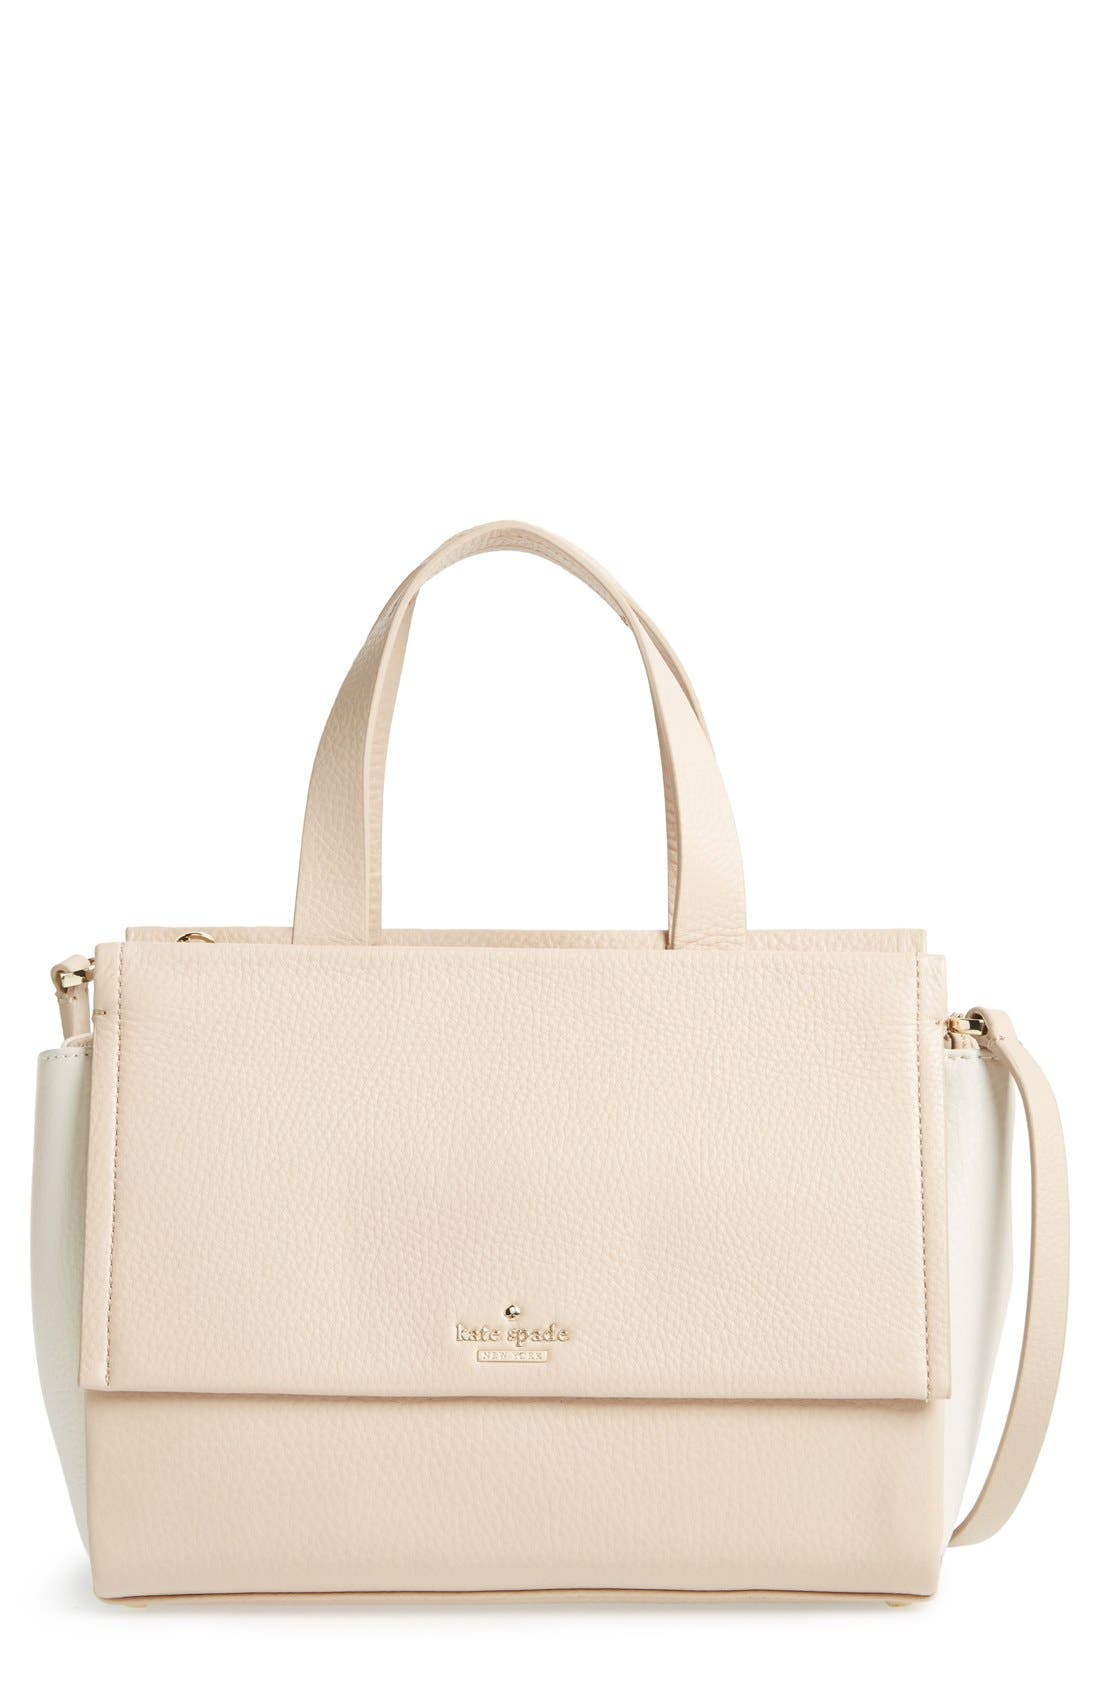 Alternate Image 1 Selected - kate spade new york 'bromley street - adela' pebbled leather satchel